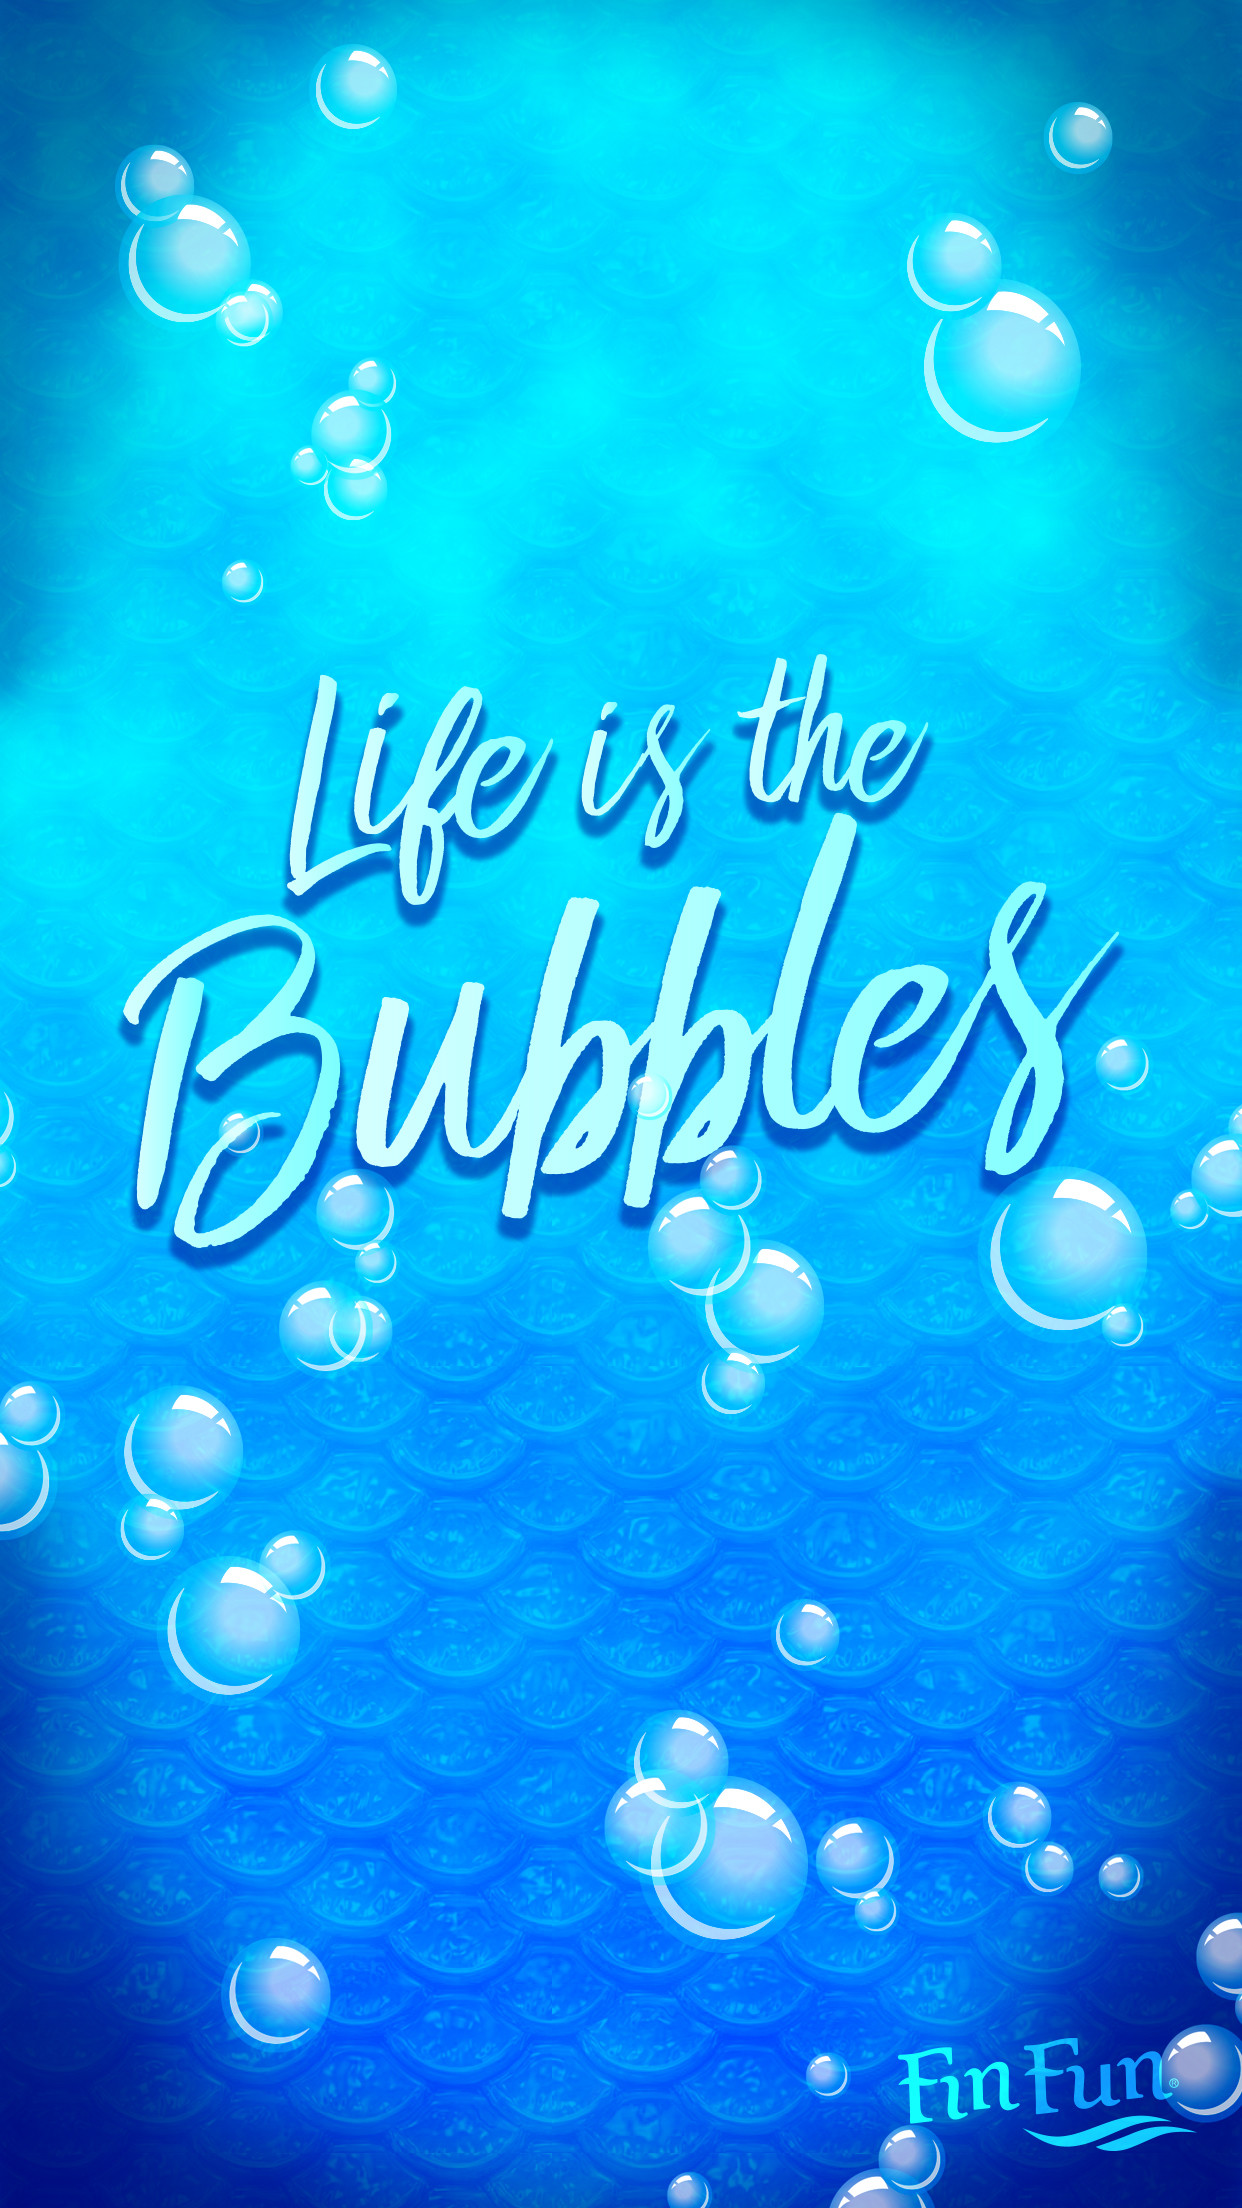 """""""Life is in the bubbles"""" mermaid wallpaper for your phone or tablet.  Download"""